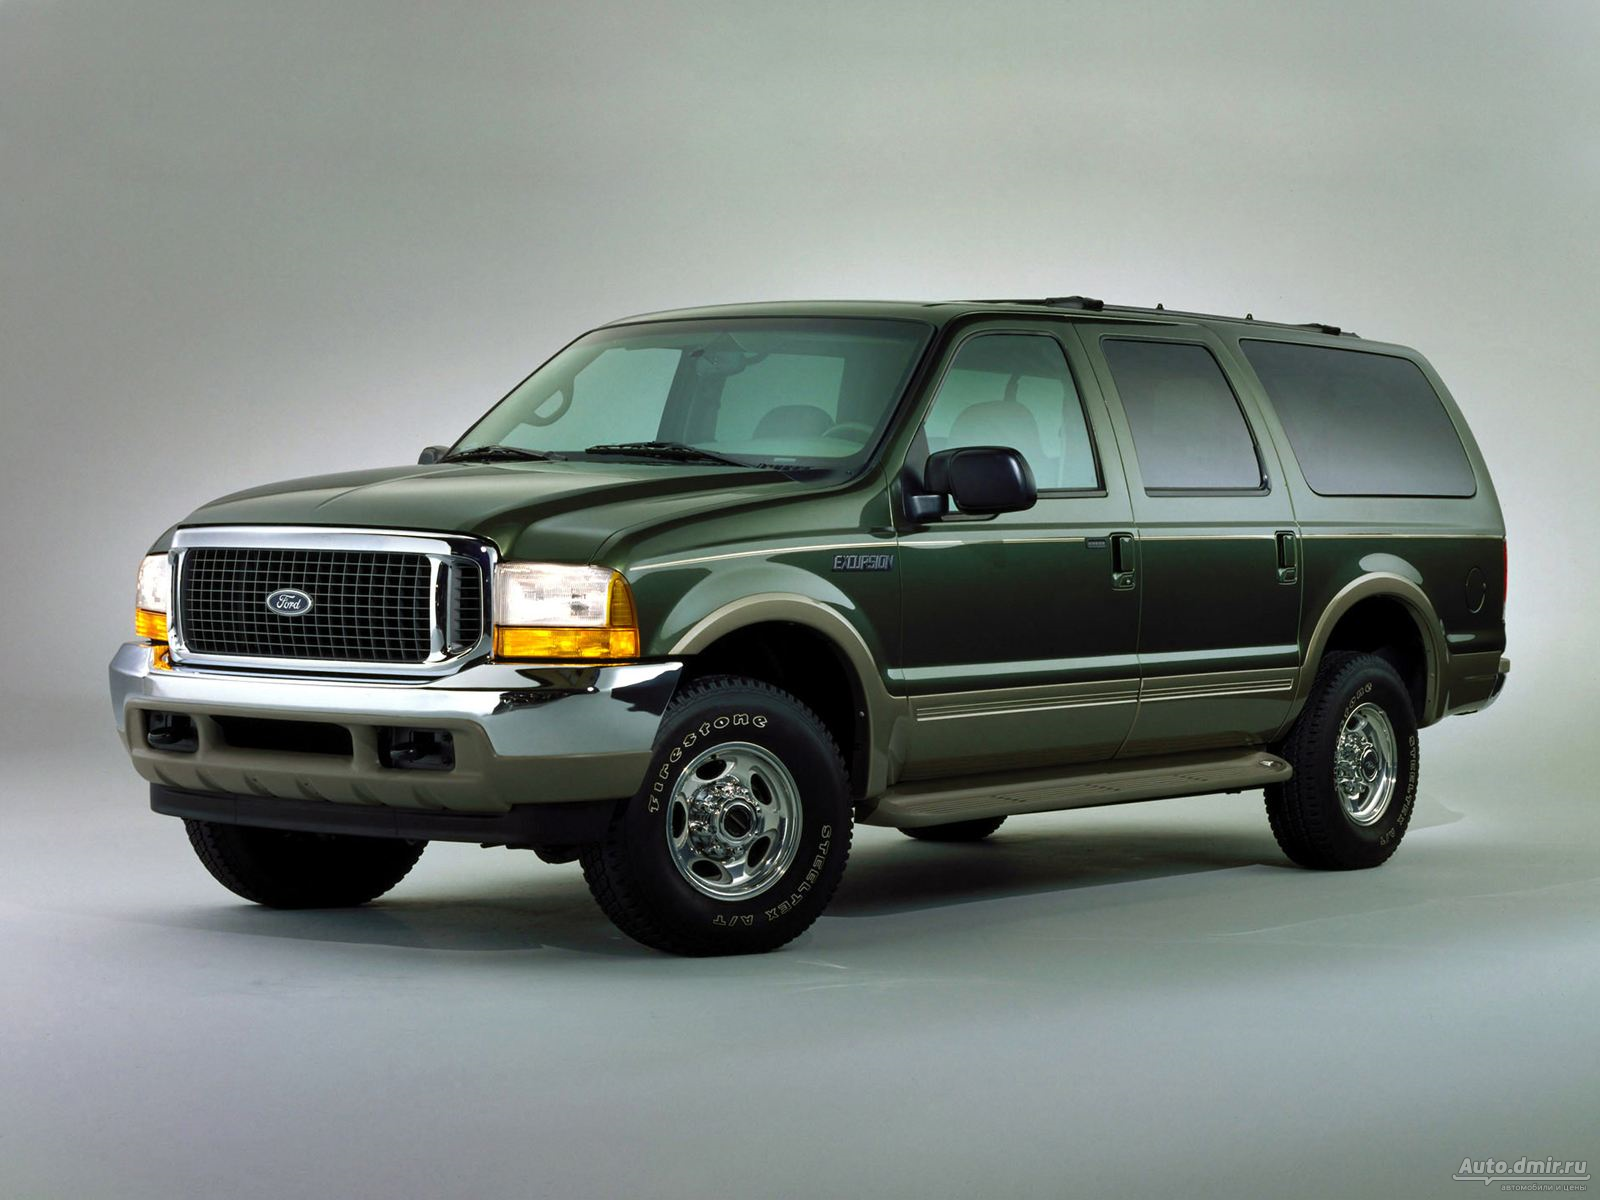 Ford excursion 2012 photo - 7